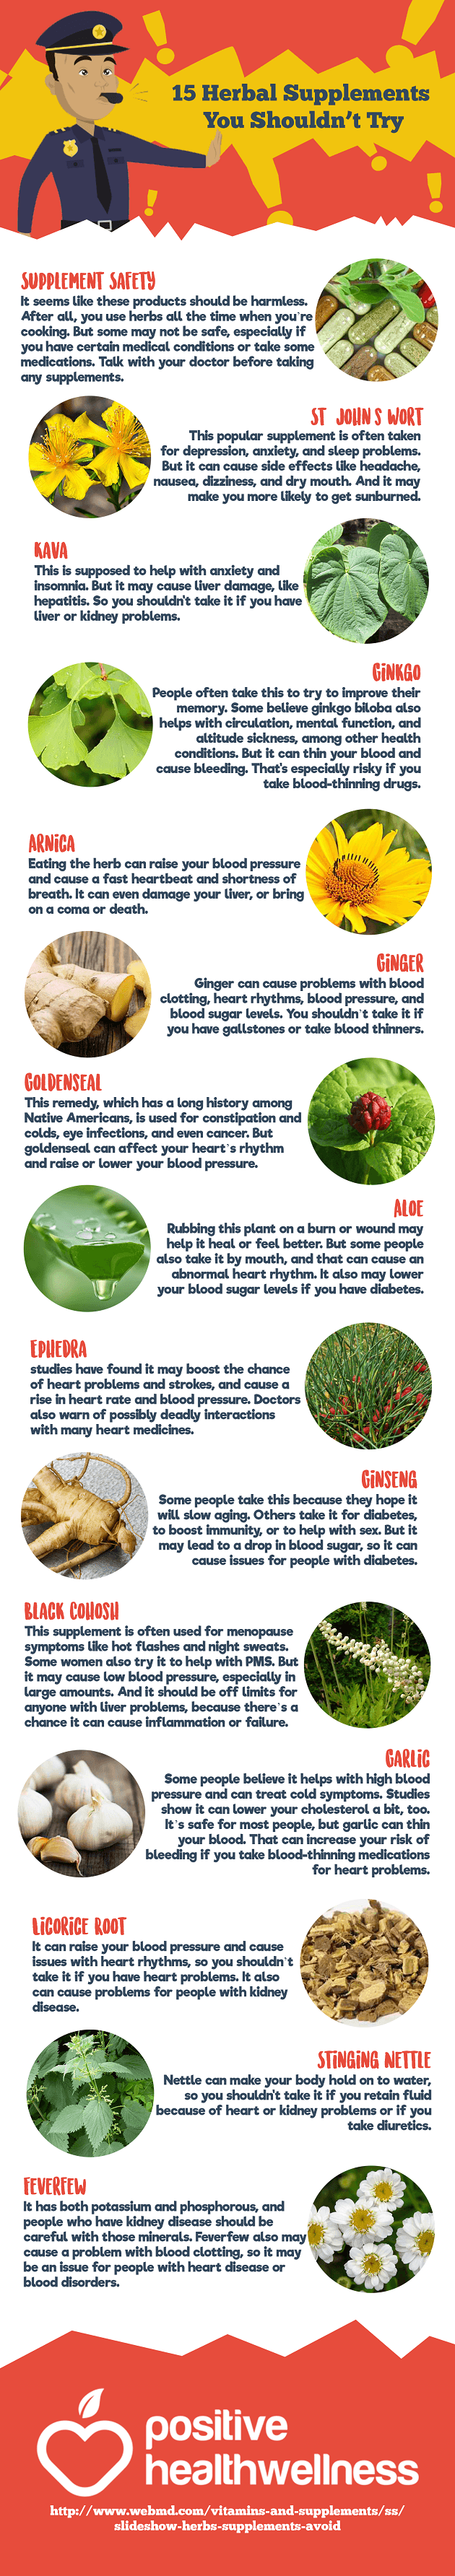 15 Herbal Supplements You Shouldn't Try